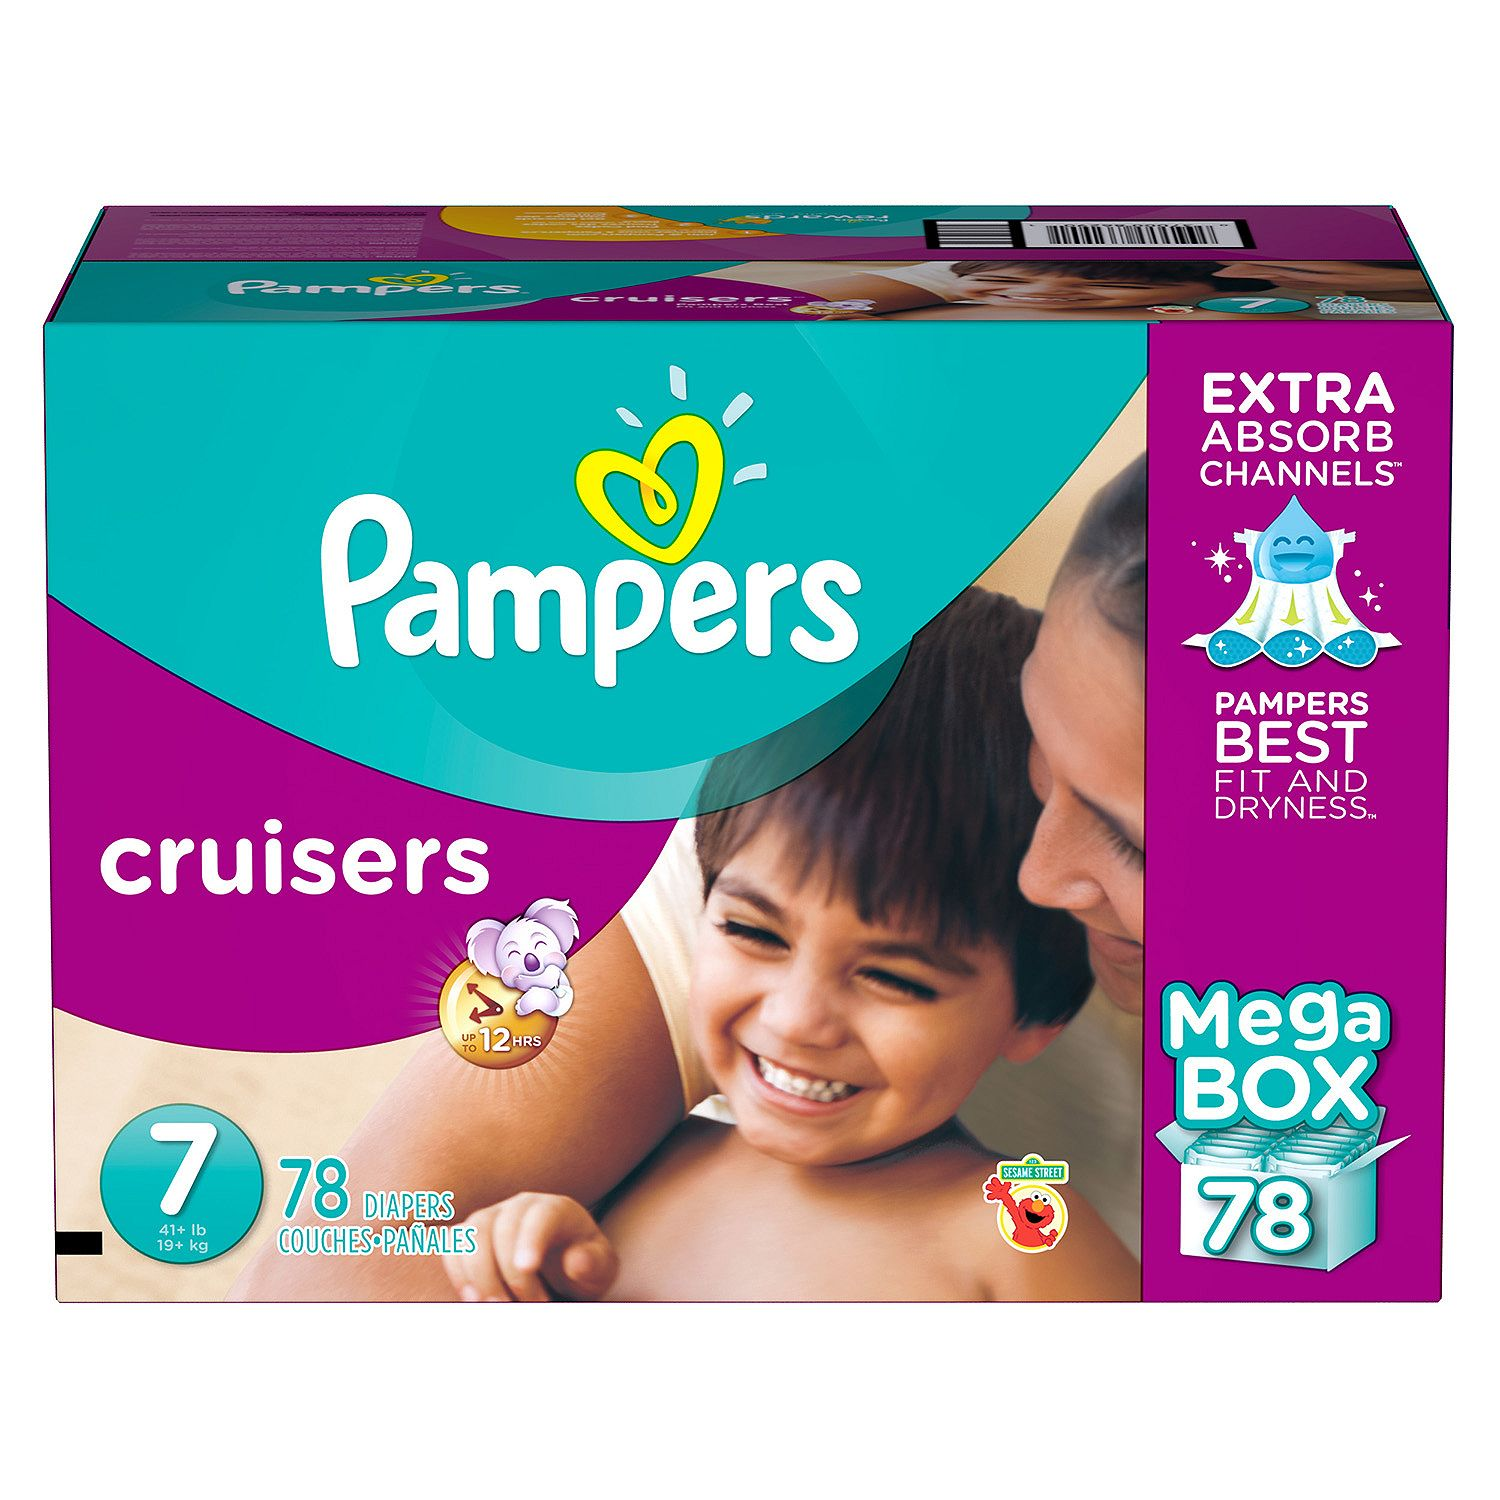 Pampers Cruisers special Diapers 7 -78 ct. (41+ lb.) by special Pampers